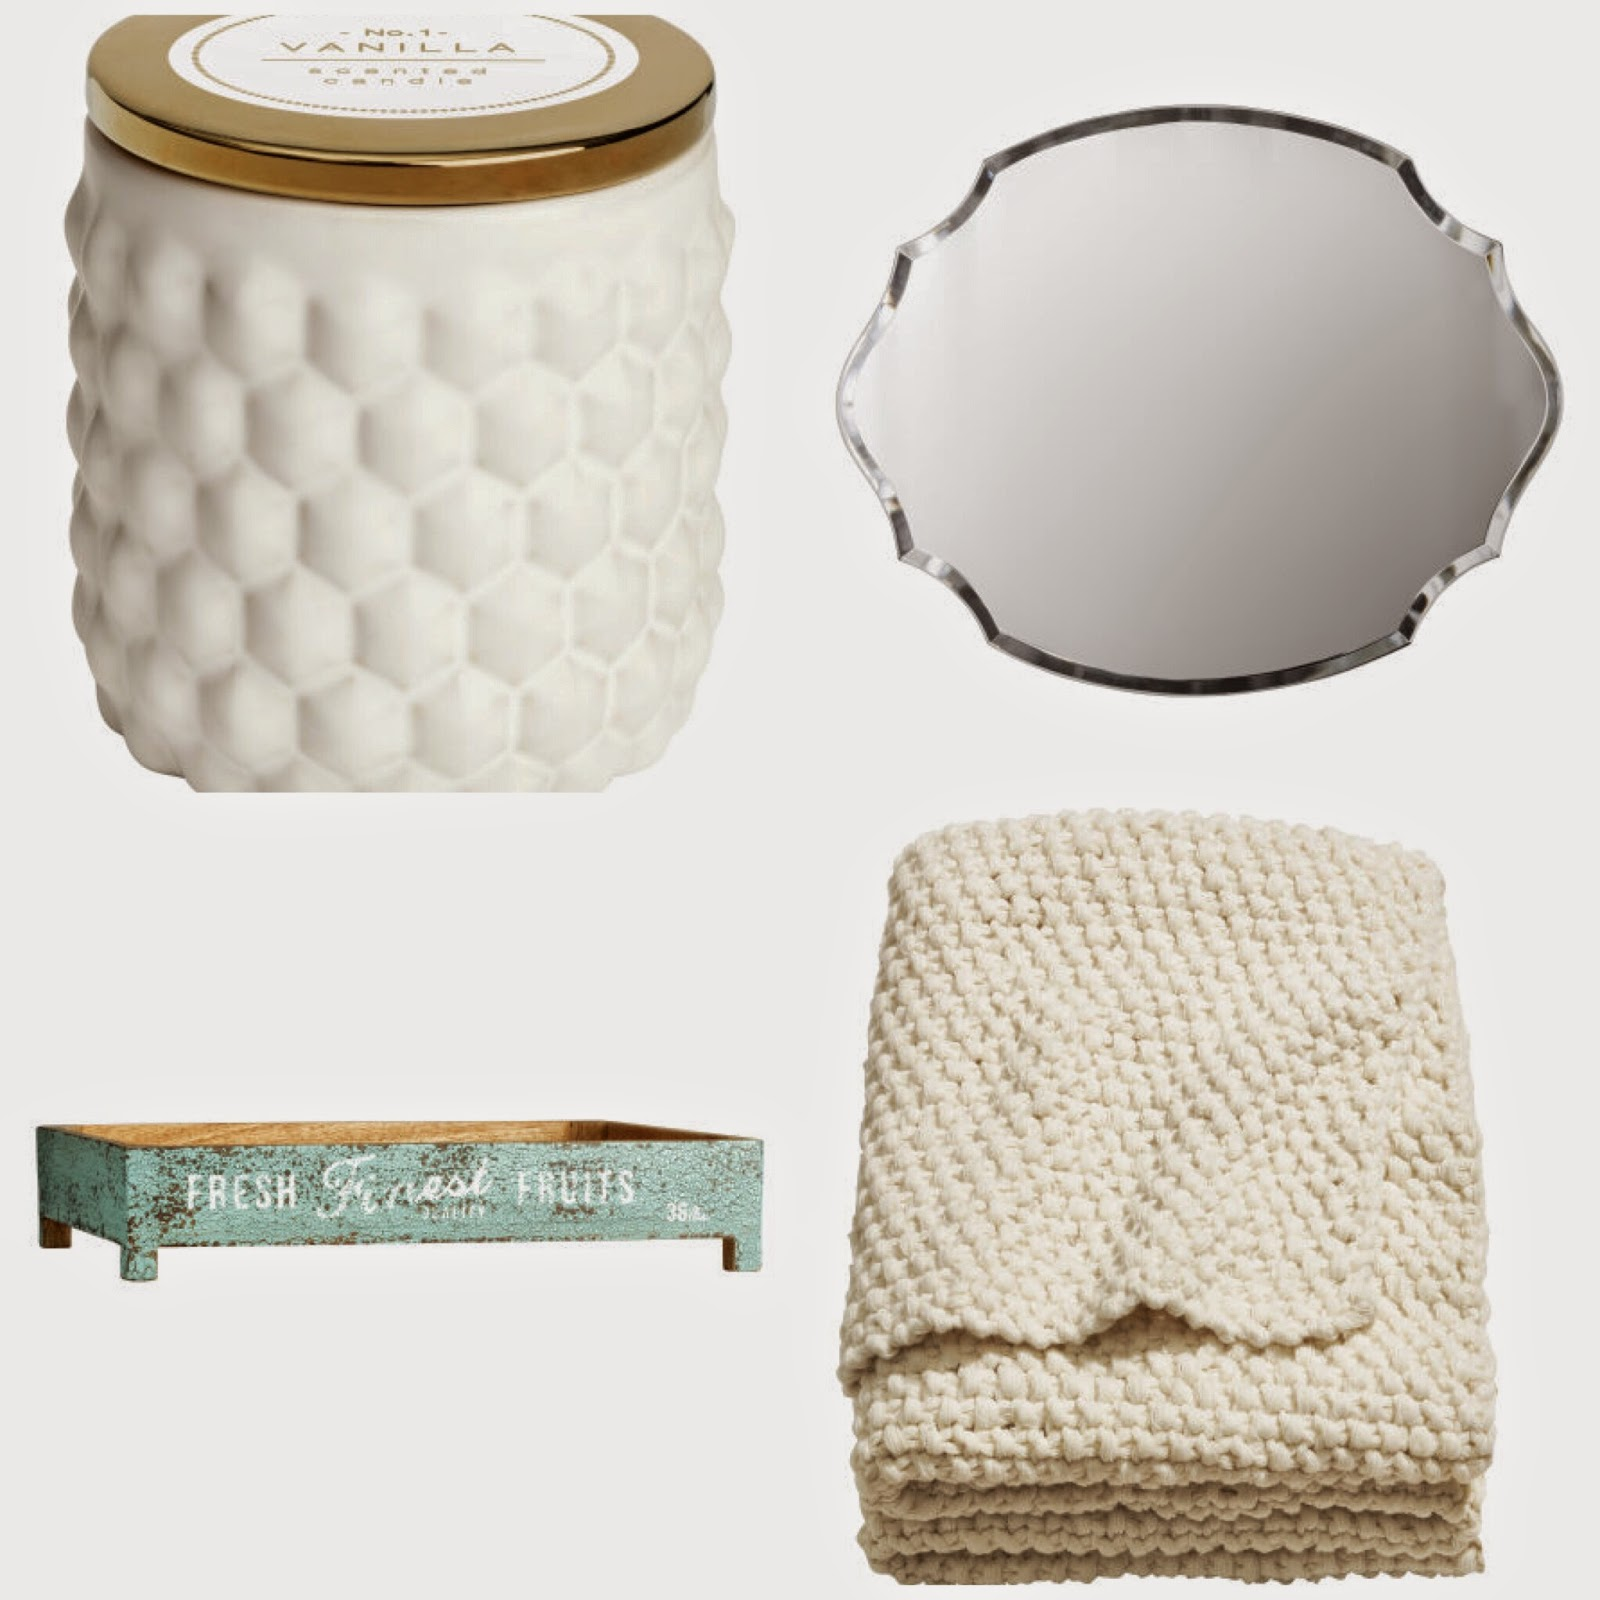 H&M Home monochrome